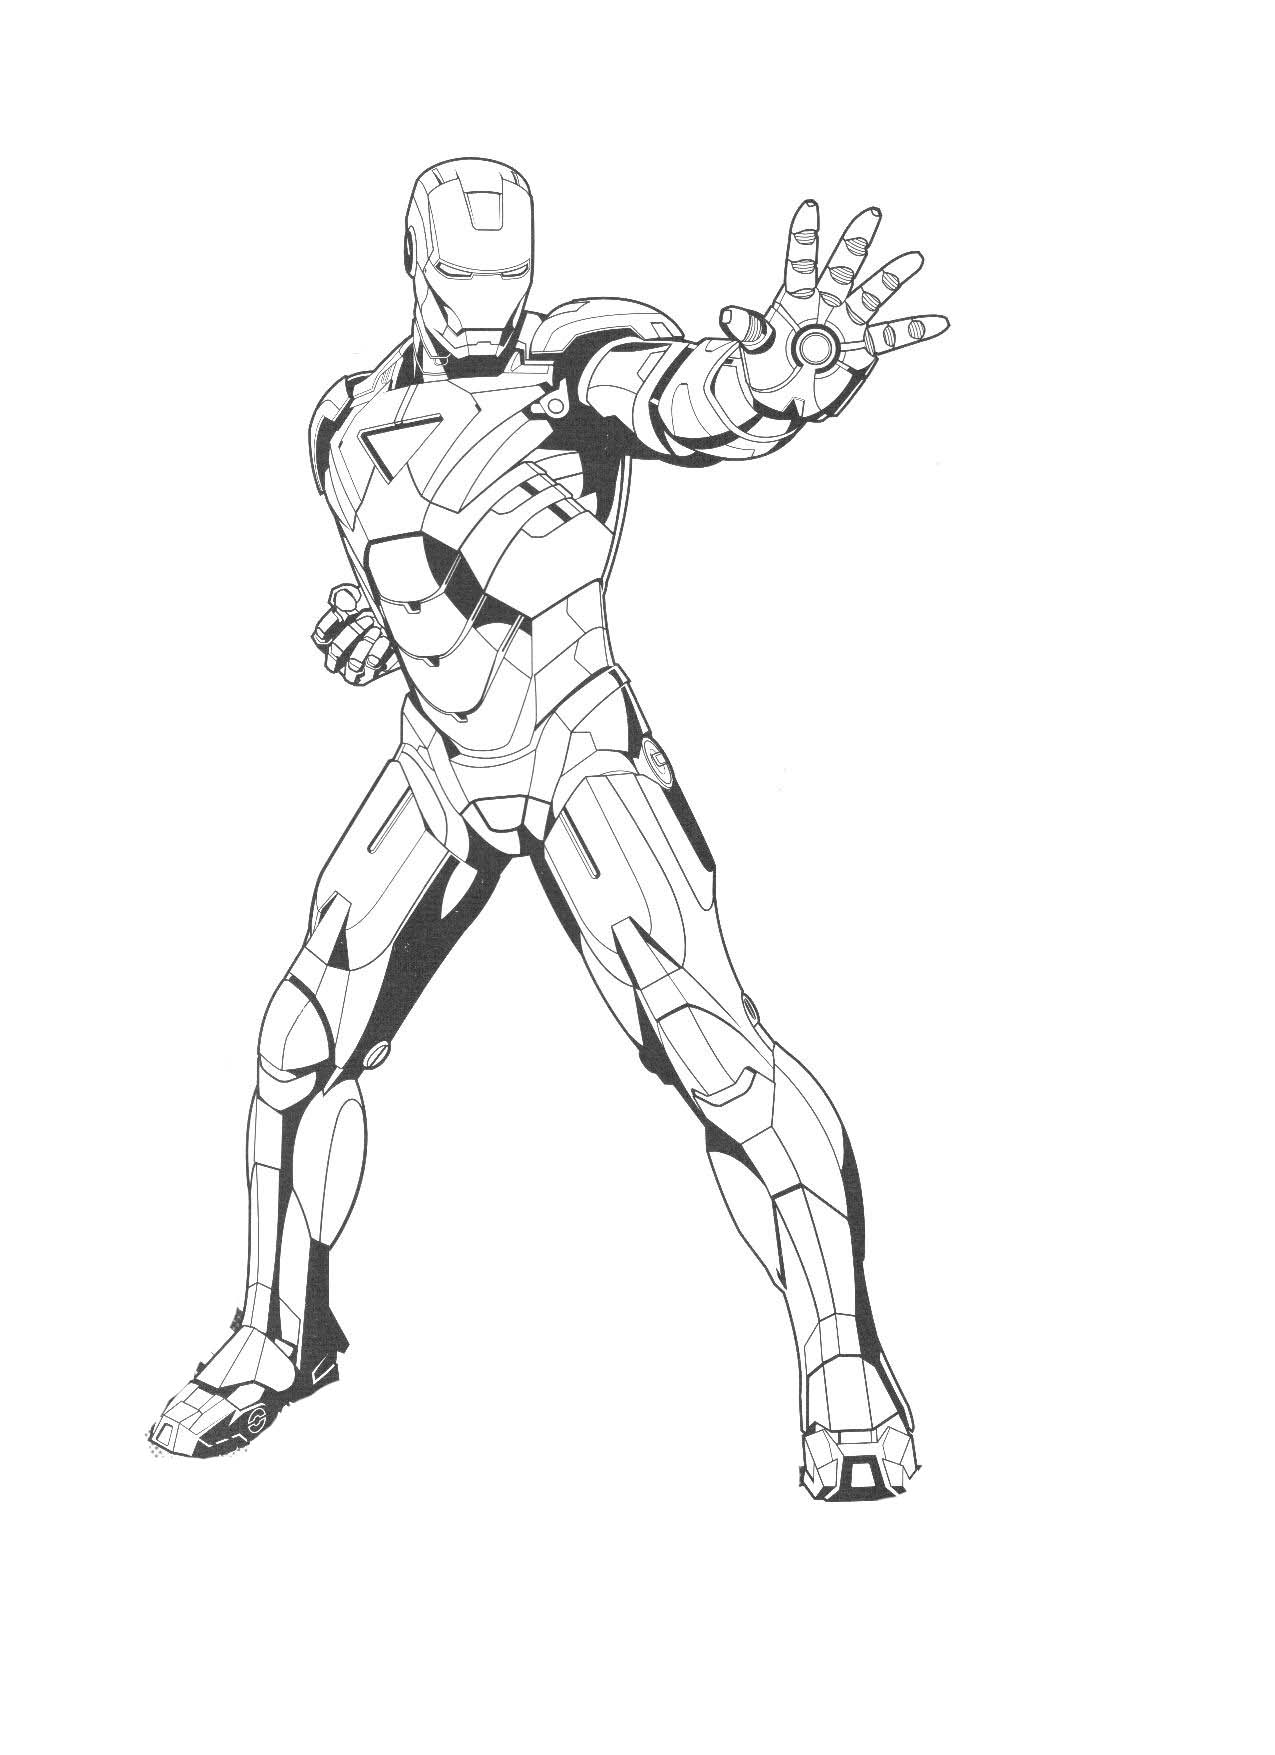 Iron Man Coloring Book Games : Free printable iron man coloring pages for kids best